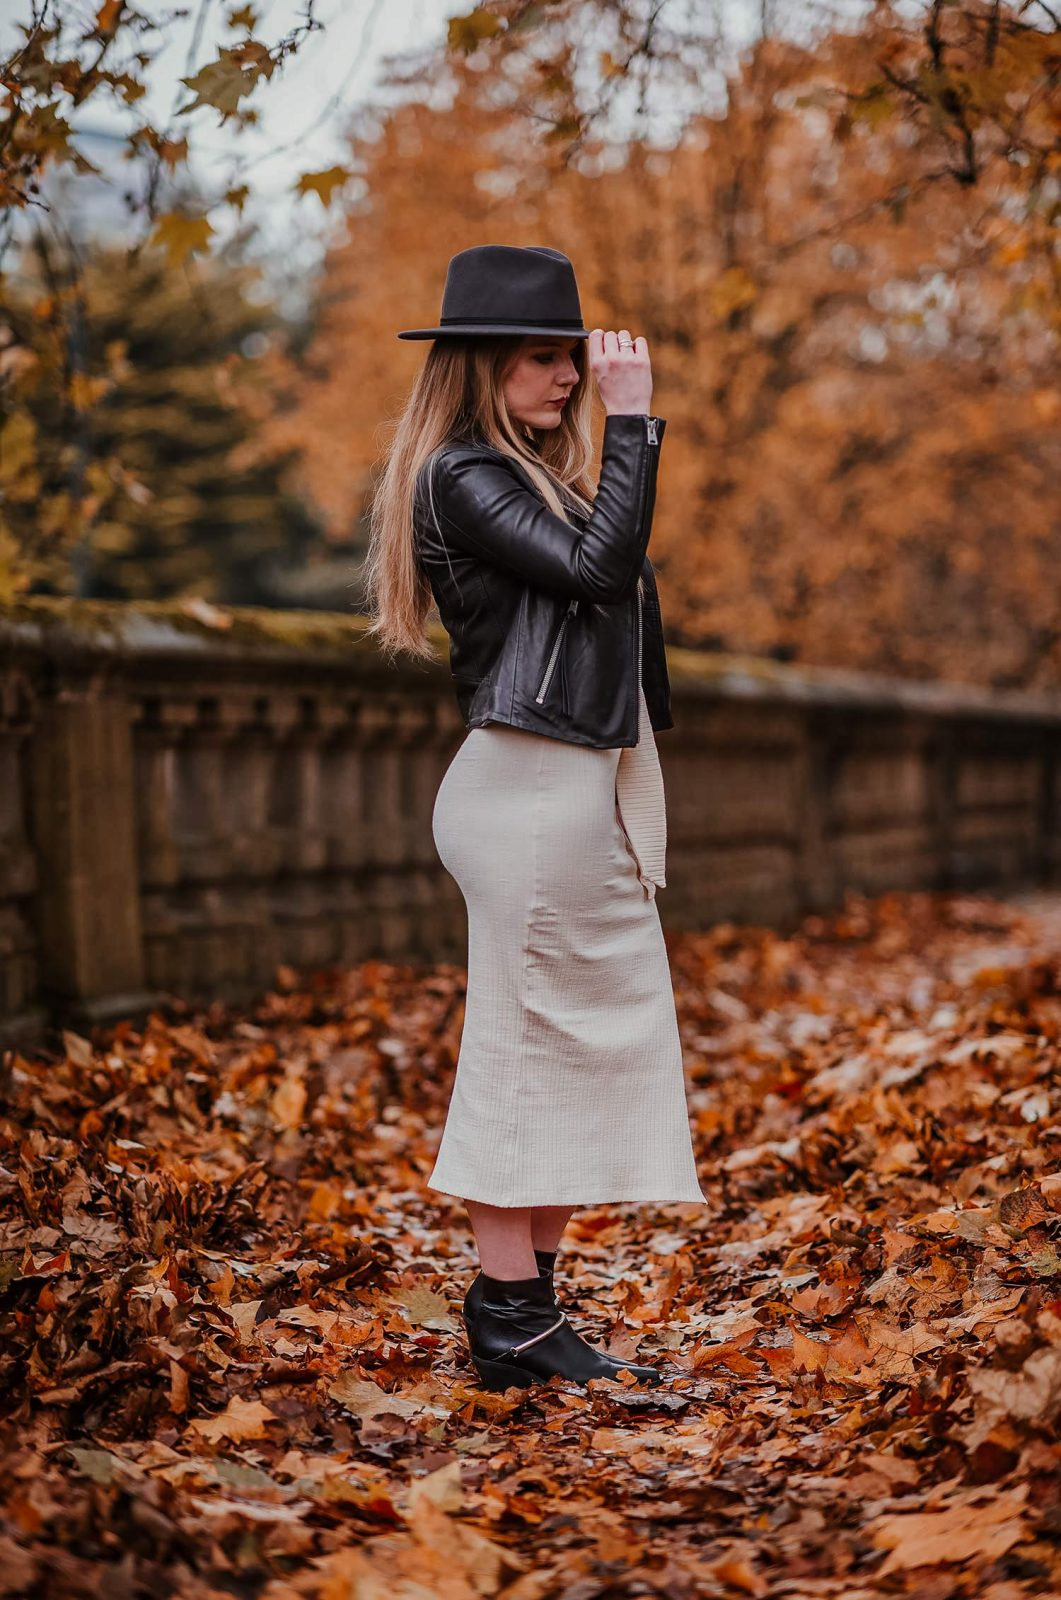 A Leather Jacket And Knitted Dress